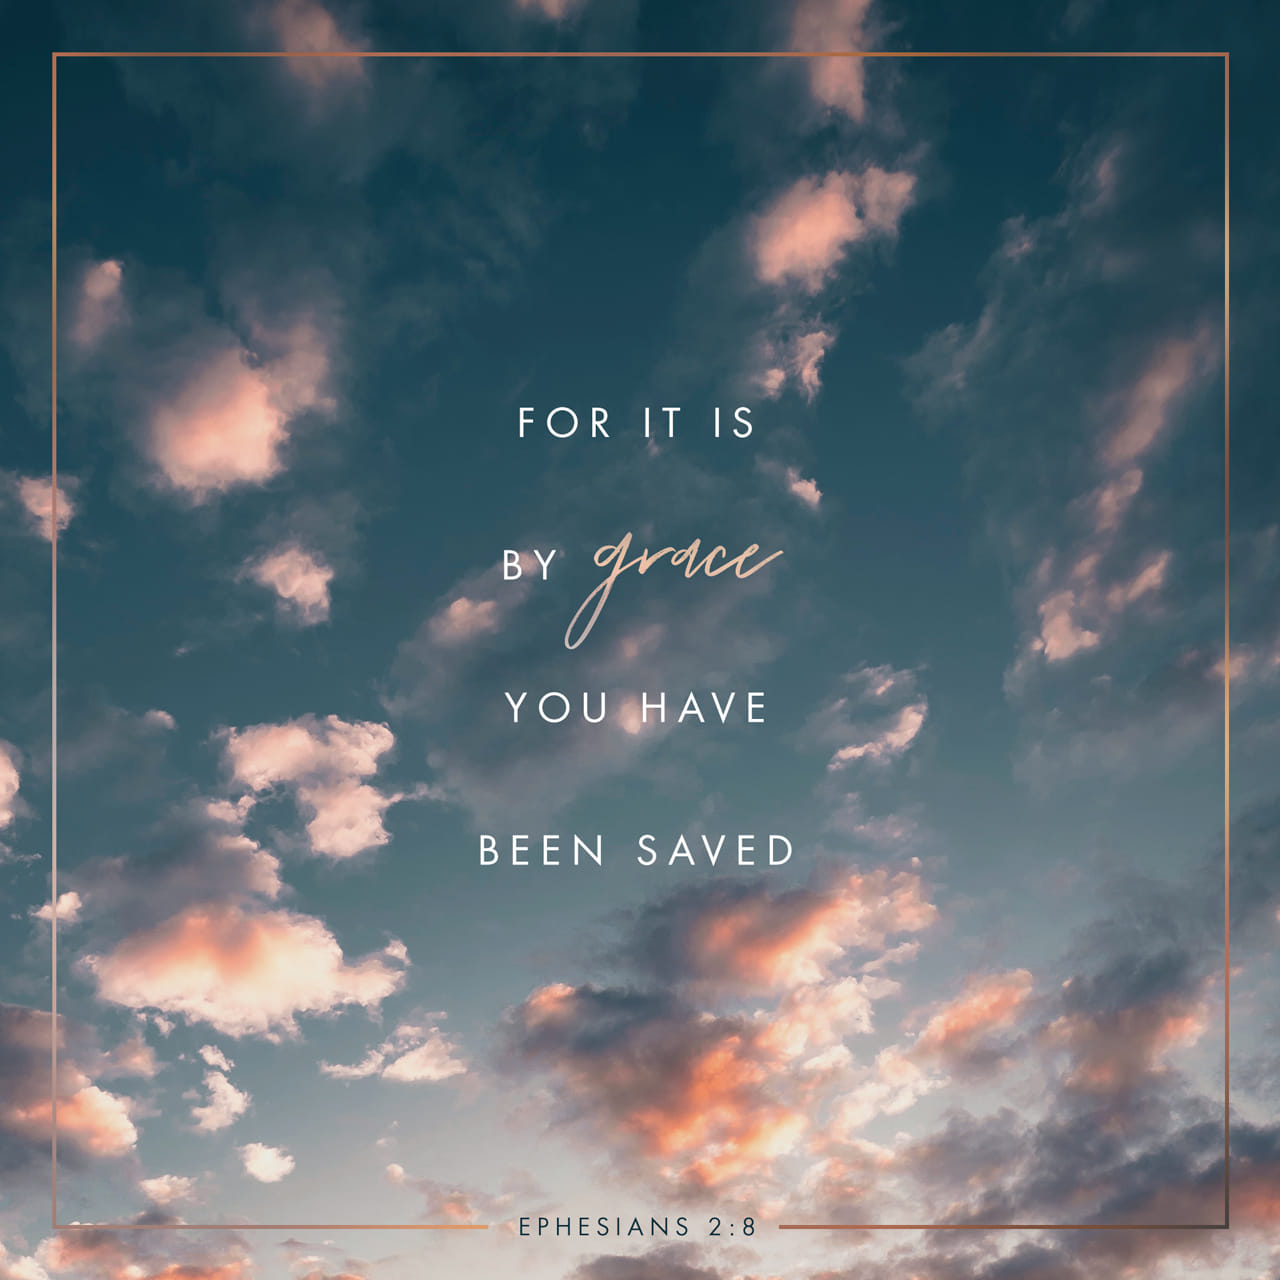 Ephesians 2:8-9 For by grace are ye saved through faith; and that not of yourselves: it is the gift of God: Not of works, lest any man should boast. | King James Version (KJV)